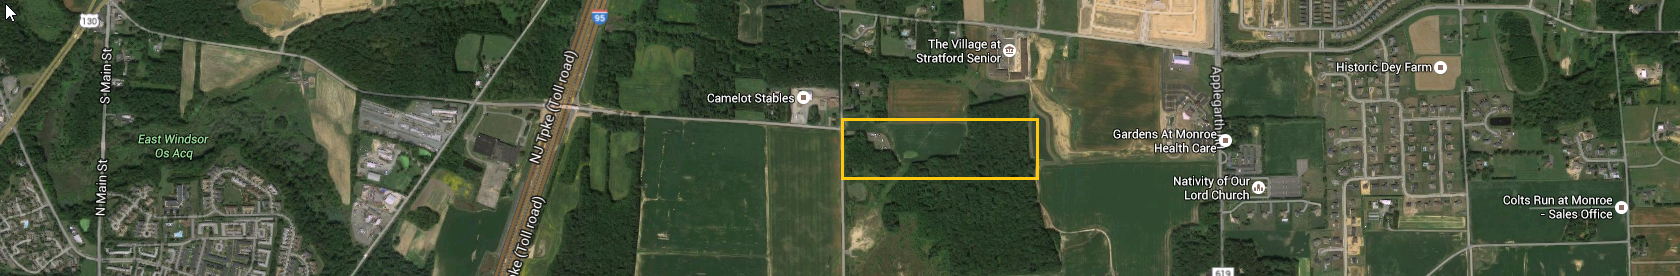 Land Purchase Offer accepted – Wyckoffs Mills Road